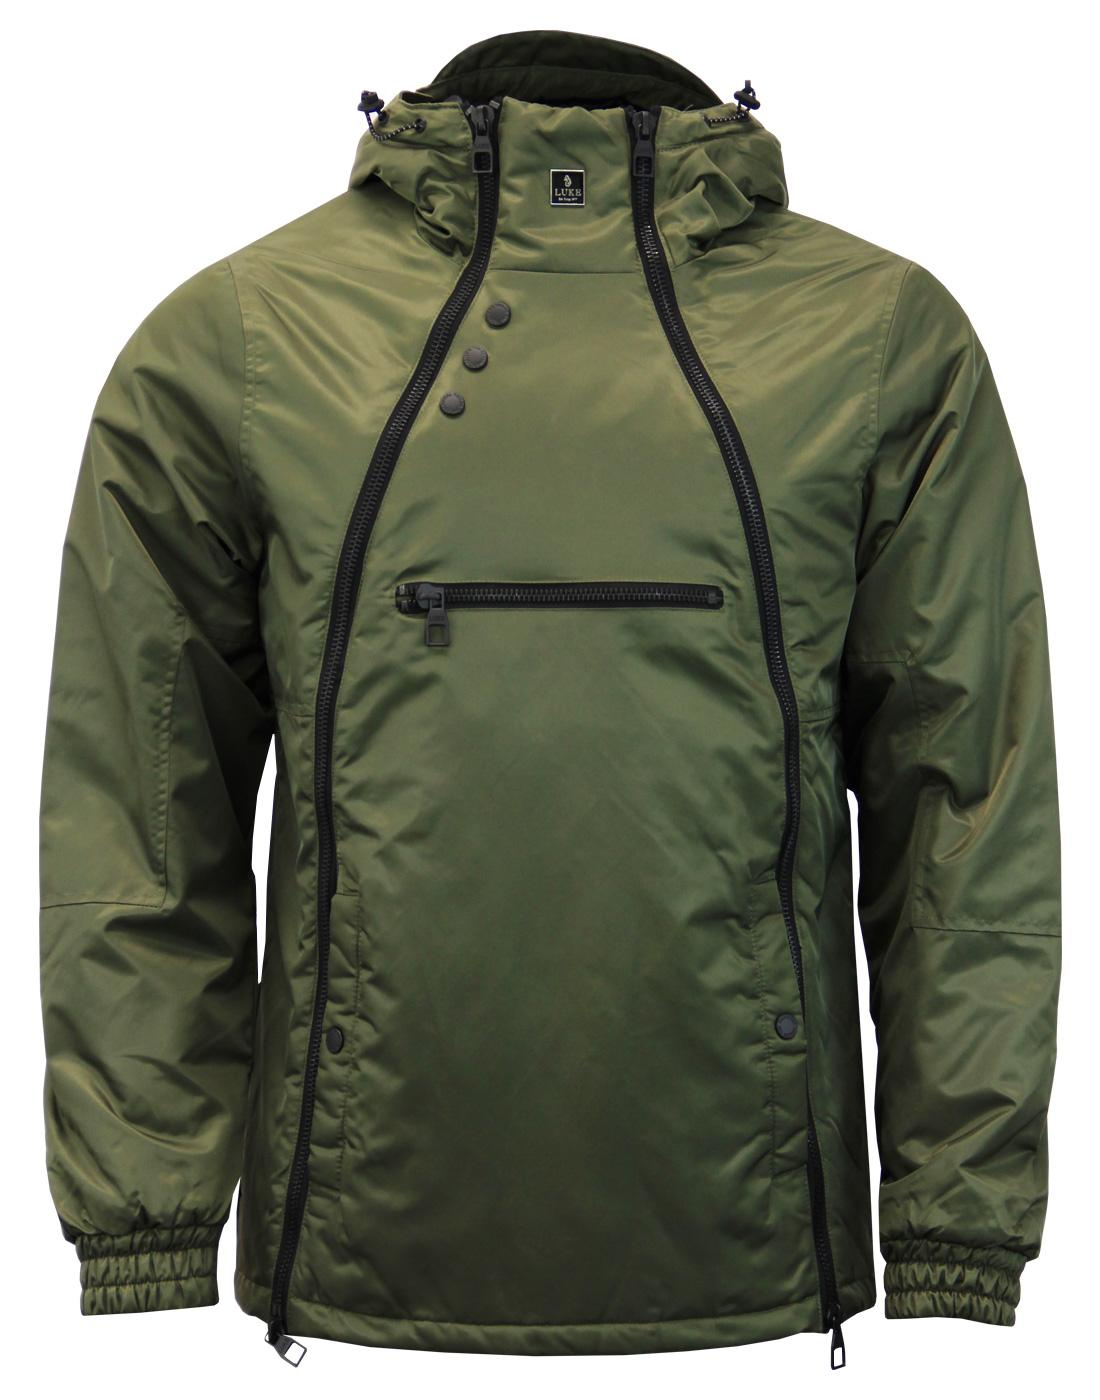 Turvey LUKE 1977 Men's Double Zip Technical Jacket